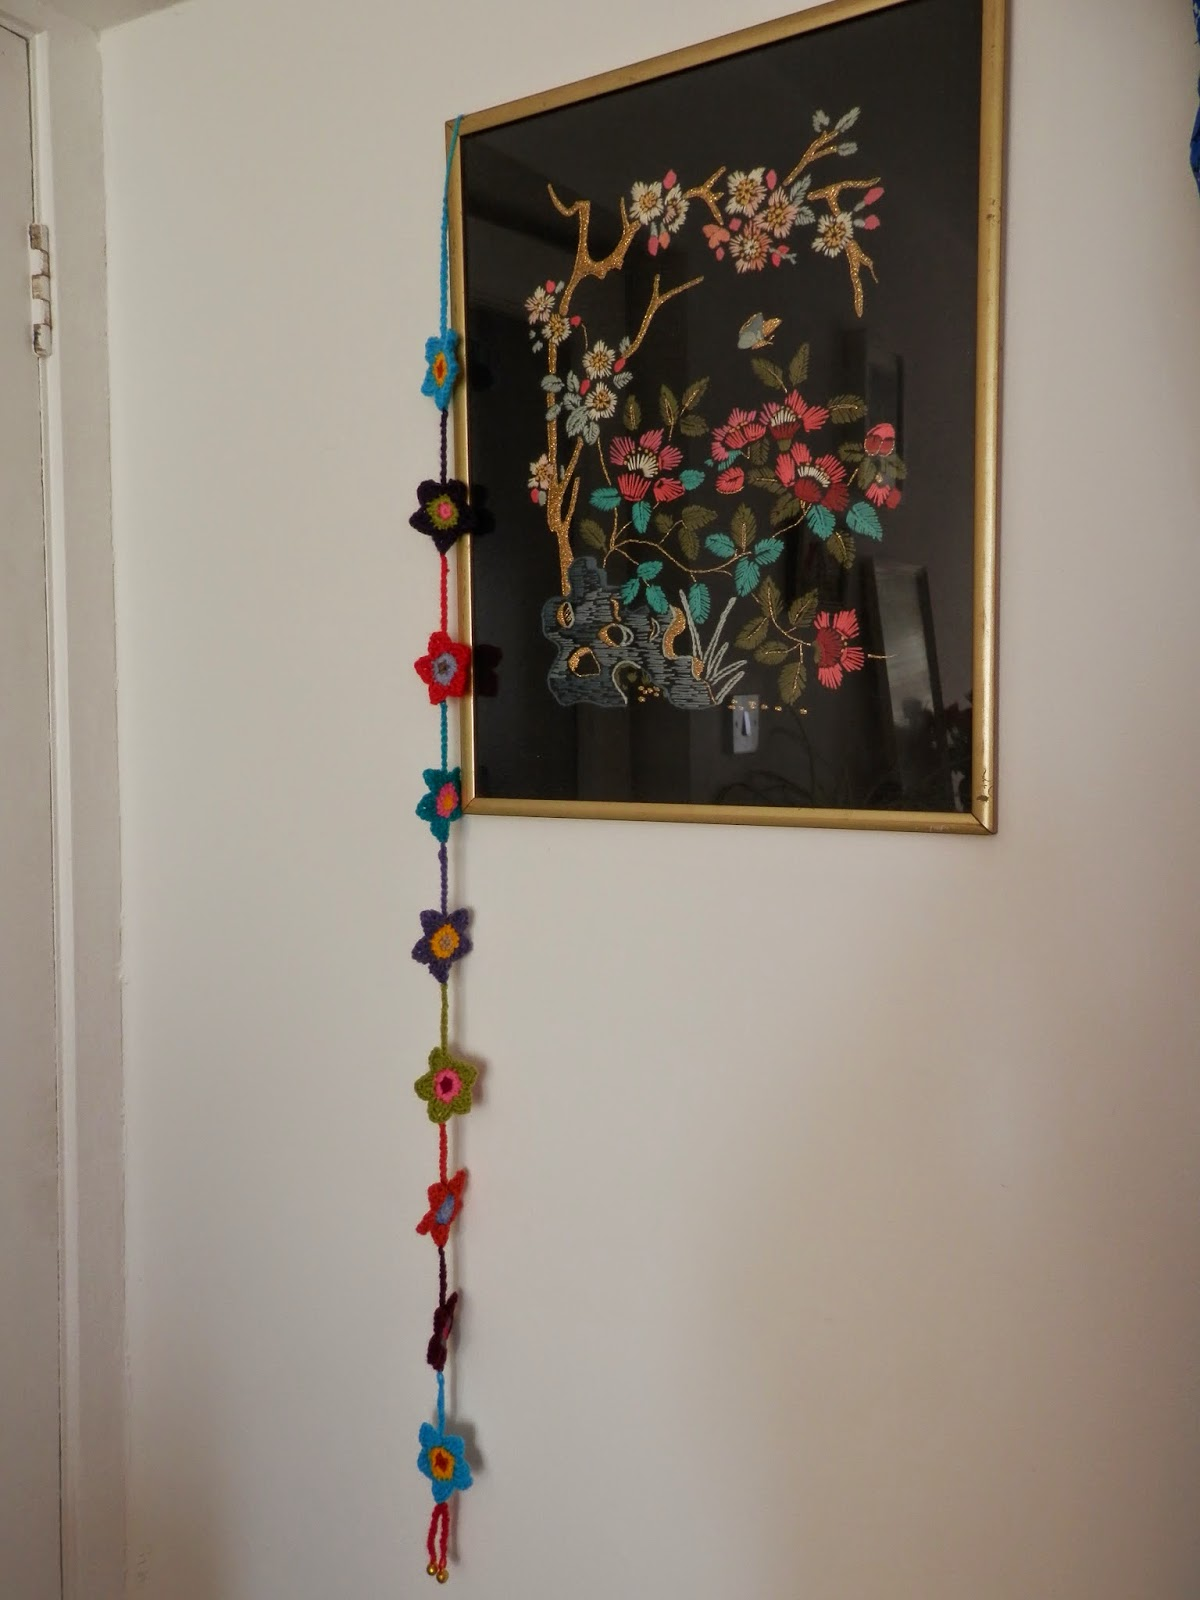 Crochet Flowers Dangly Mobile Garland. secondhandsusie.blogspot.co.uk